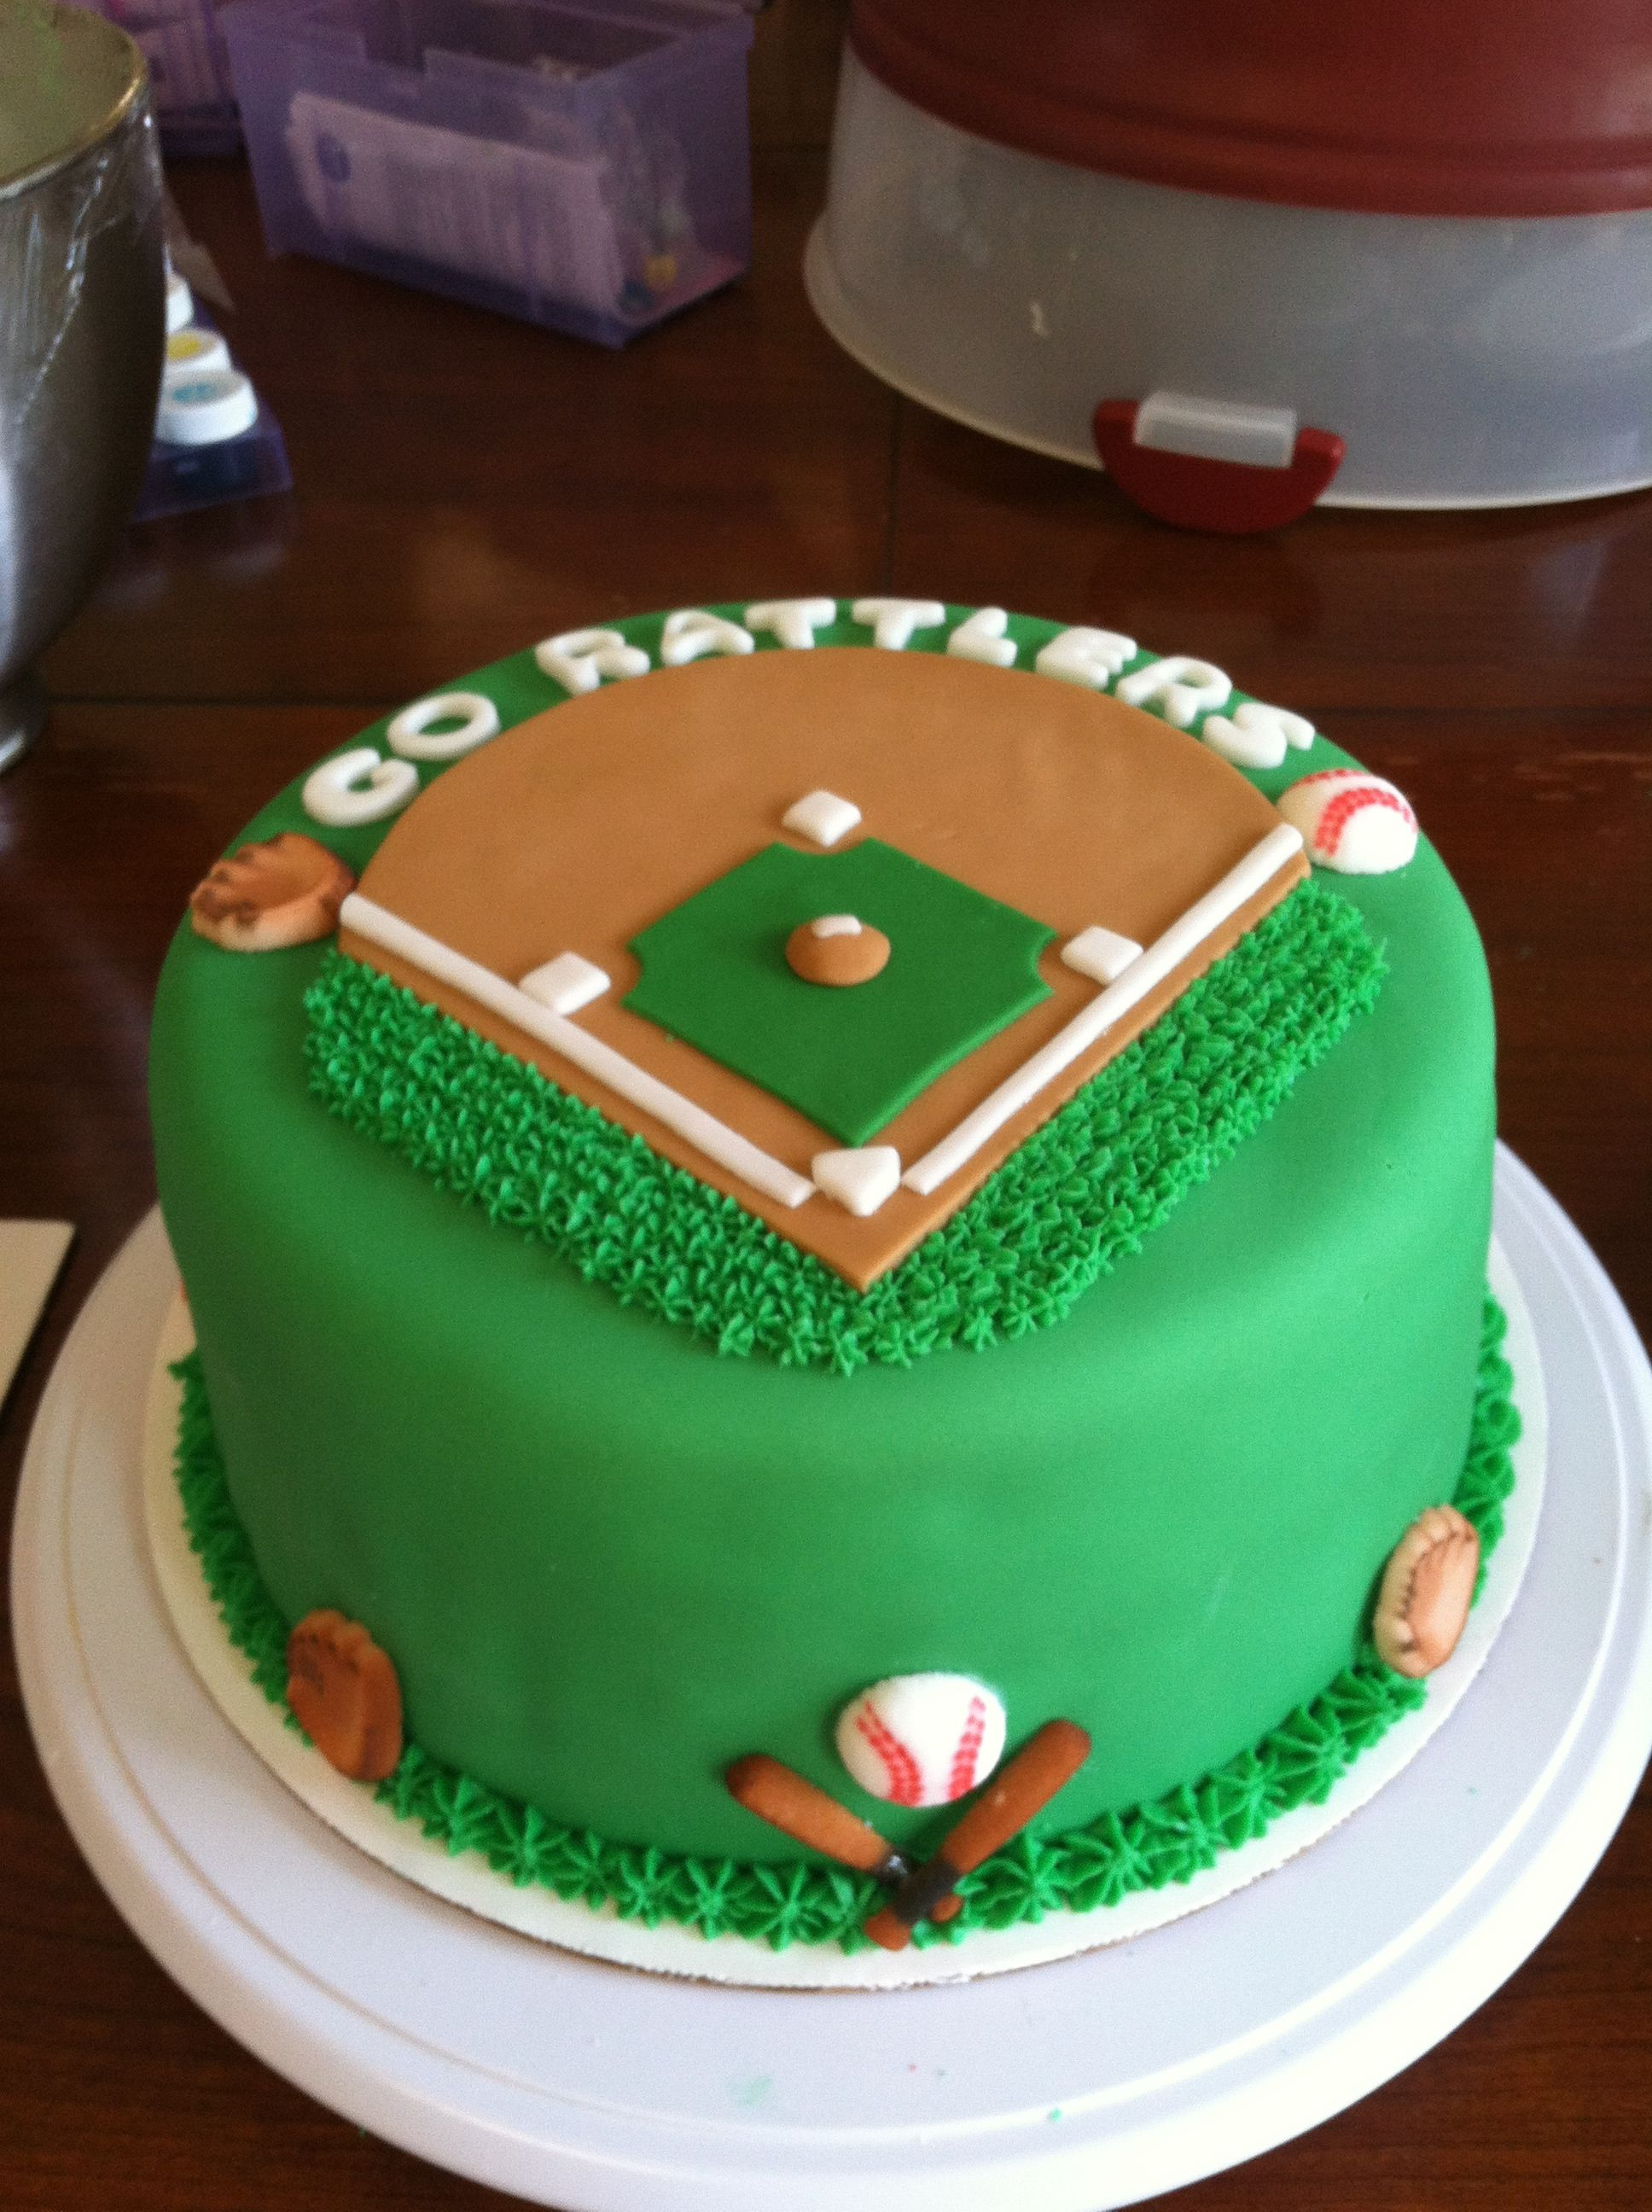 Baseball cakemaybe not a good opportunity for frosting face